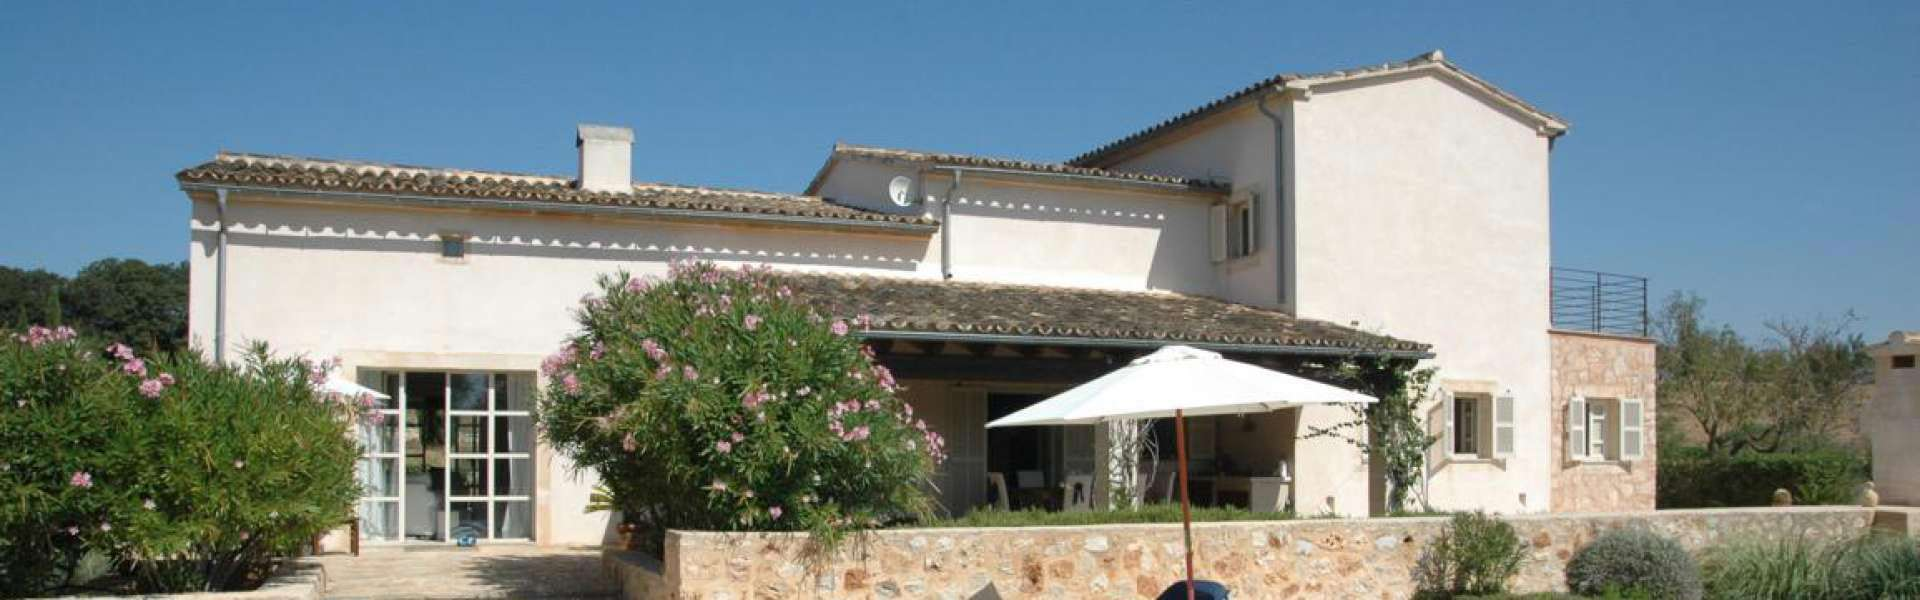 Porreres - Spacious Country house in quiet secluded location